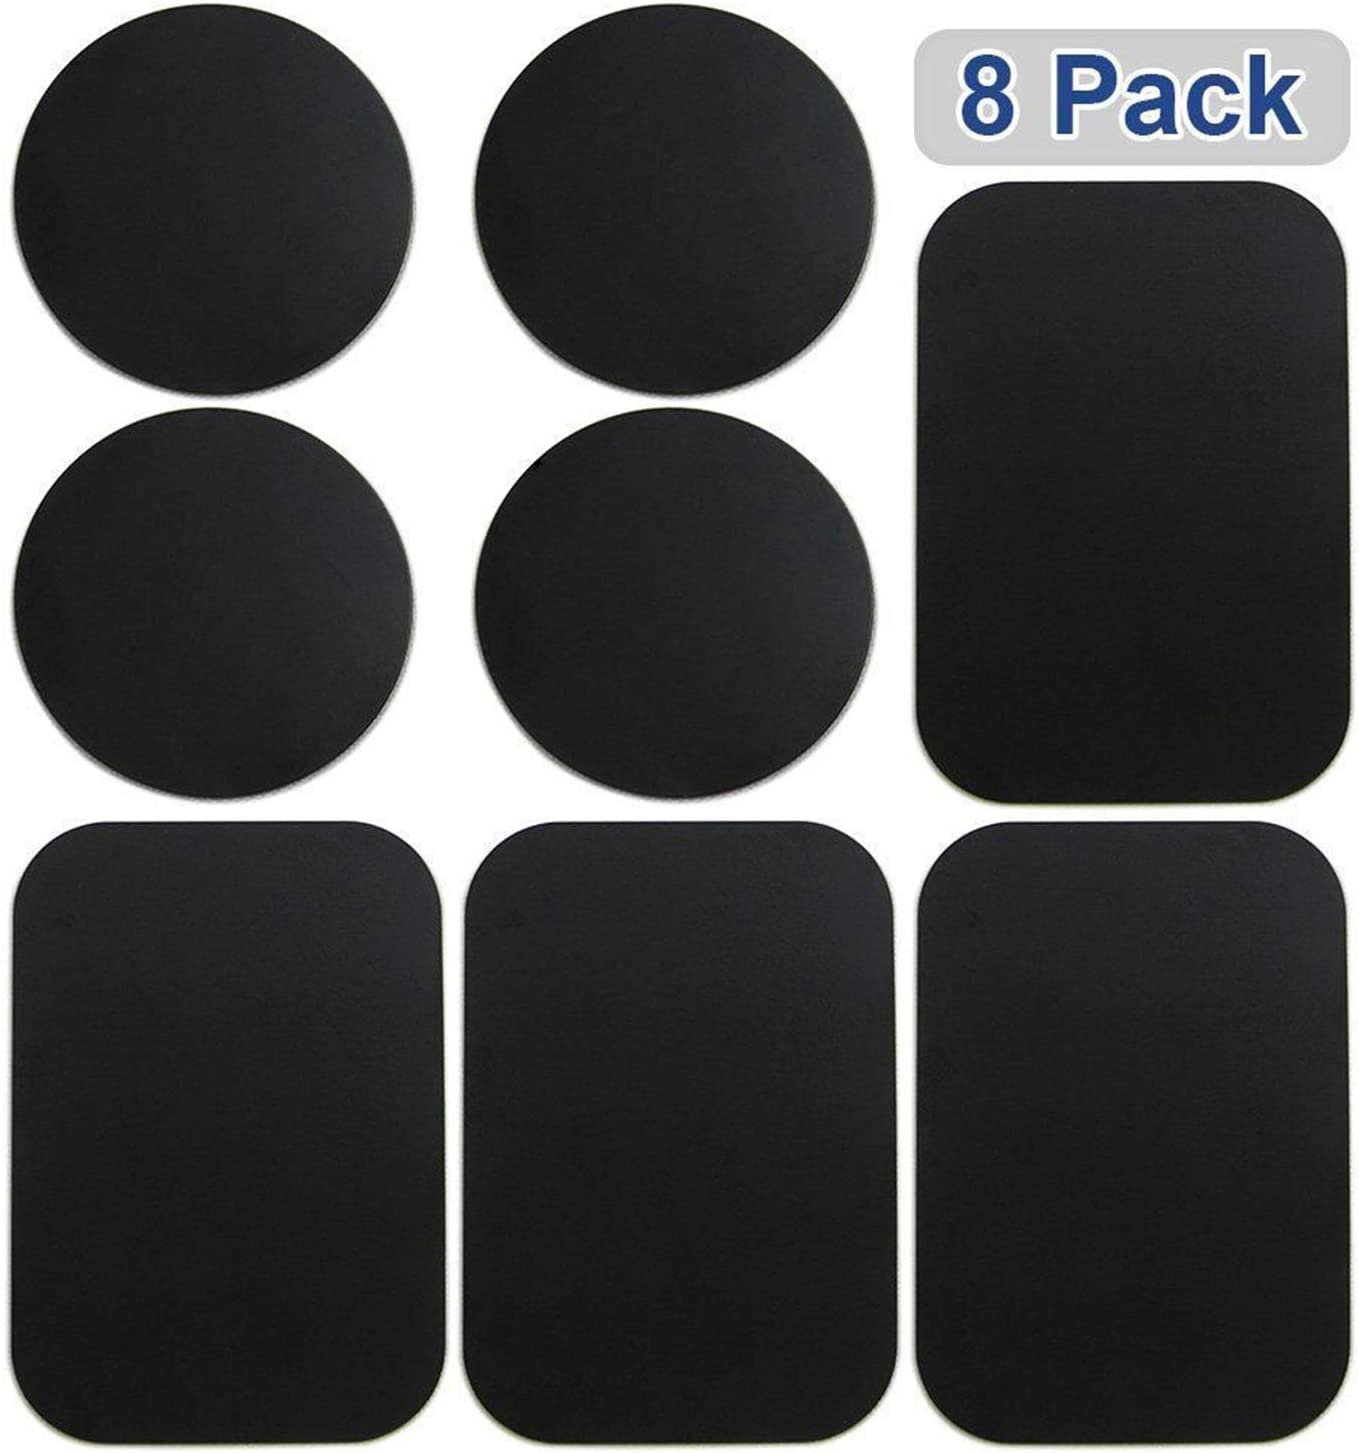 Rectangular Plates,8pcs Metal Plates Sticker Car Mount Replace Metal Adhesive Plate for Magnetic Phone Car Holder Super Thin Steel Insert Plate